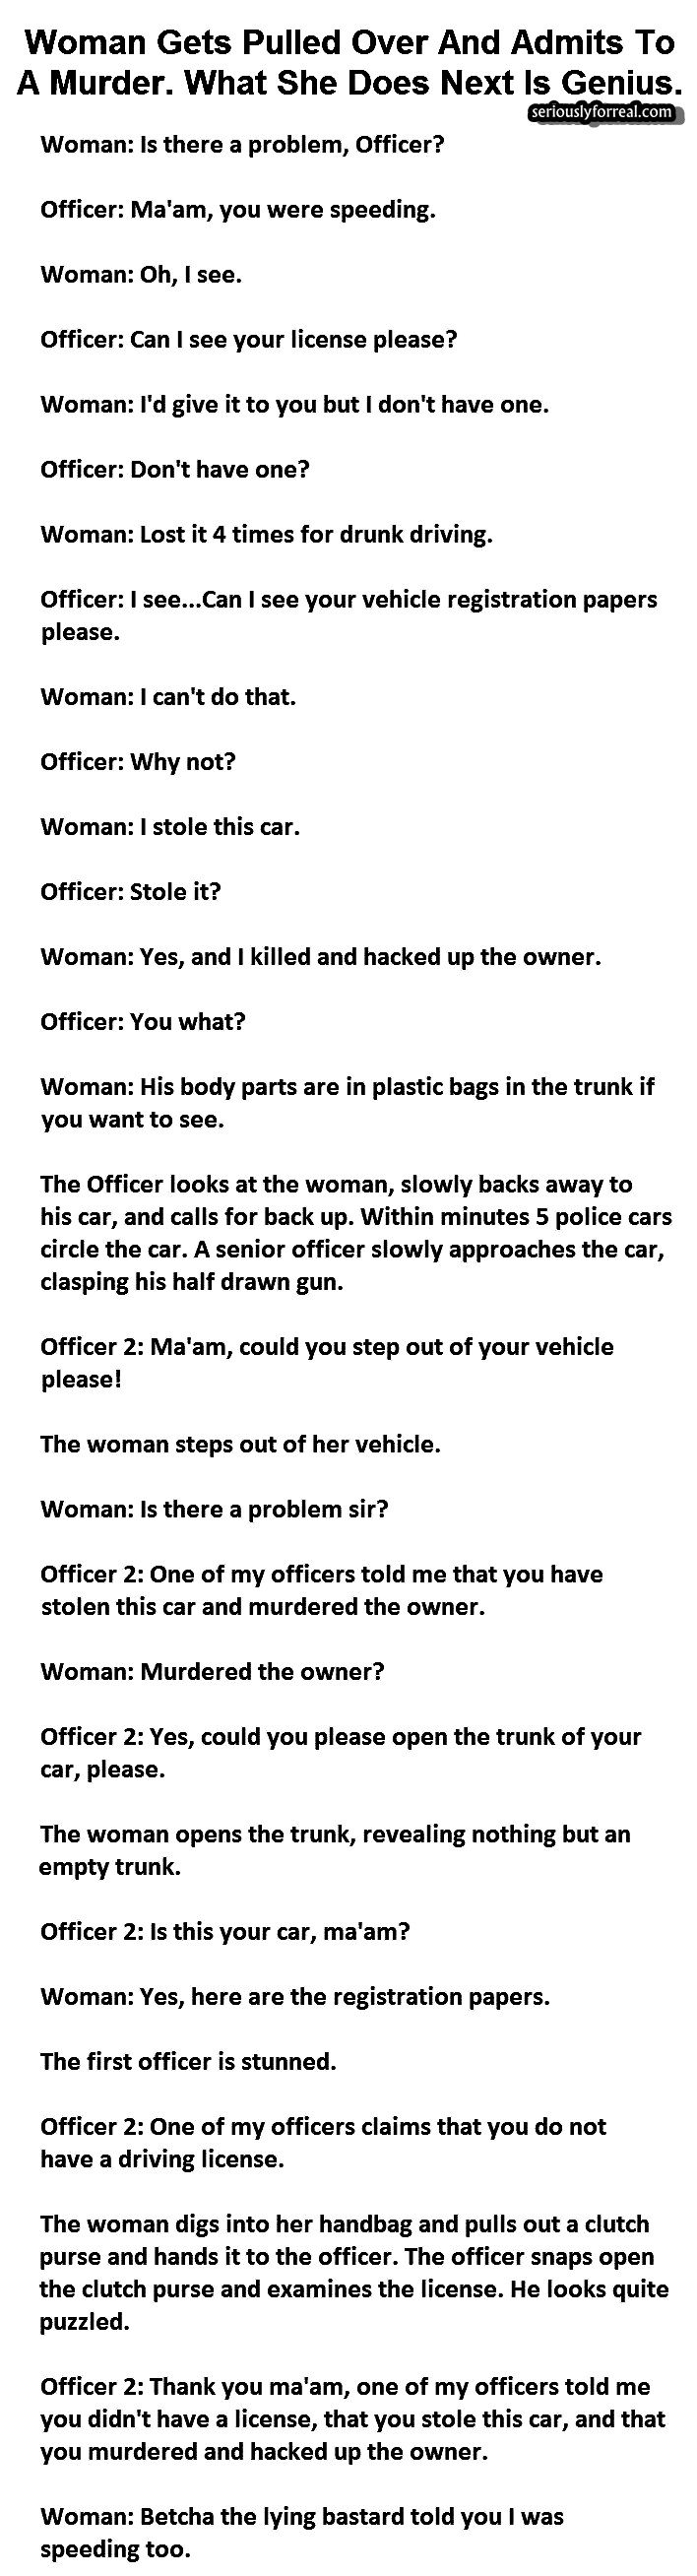 Woman Gets Pulled Over And Admits To A Murder.What She Does Next Is GENIUS - Seriously, For Real?Seriously, For Real?